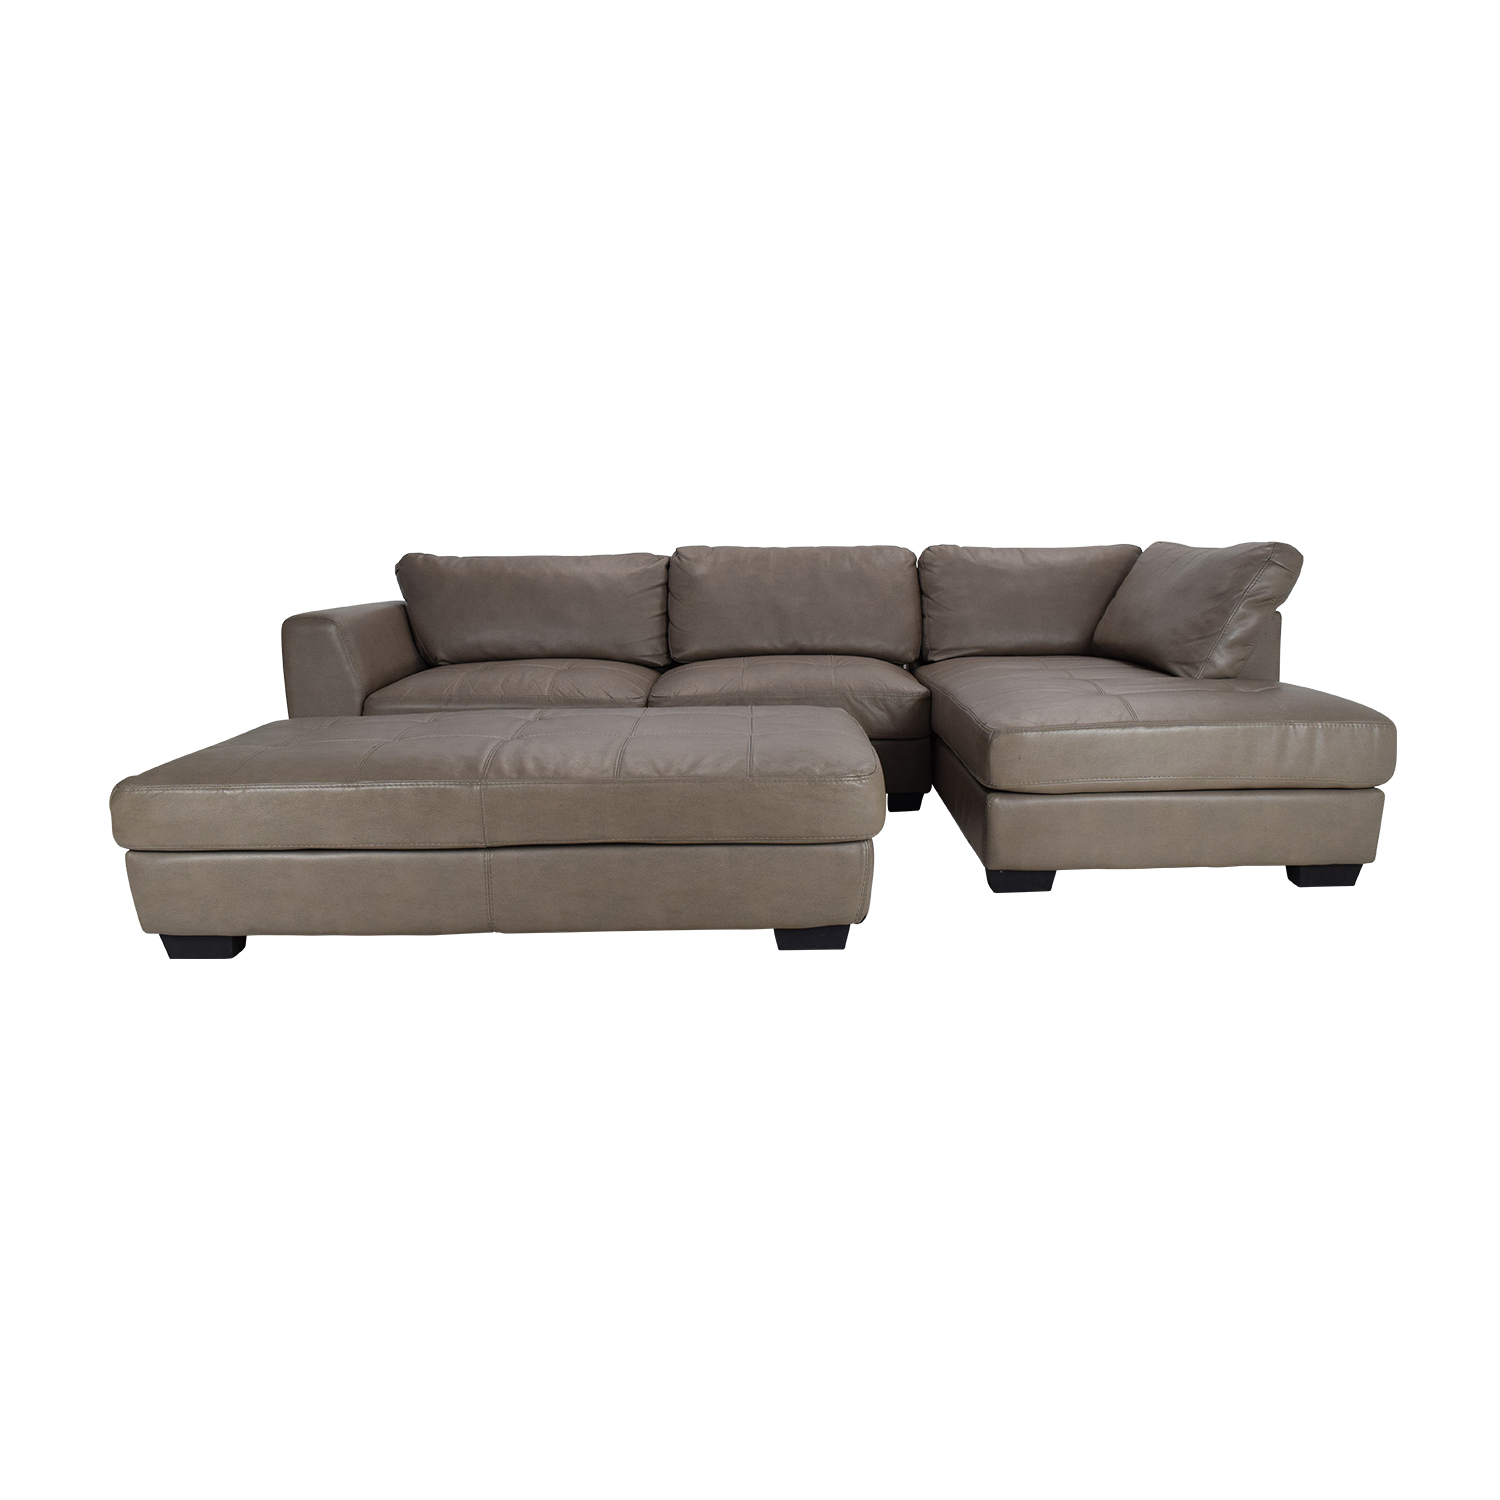 Luttrell Leather Sectional with Ottoman / Sofas